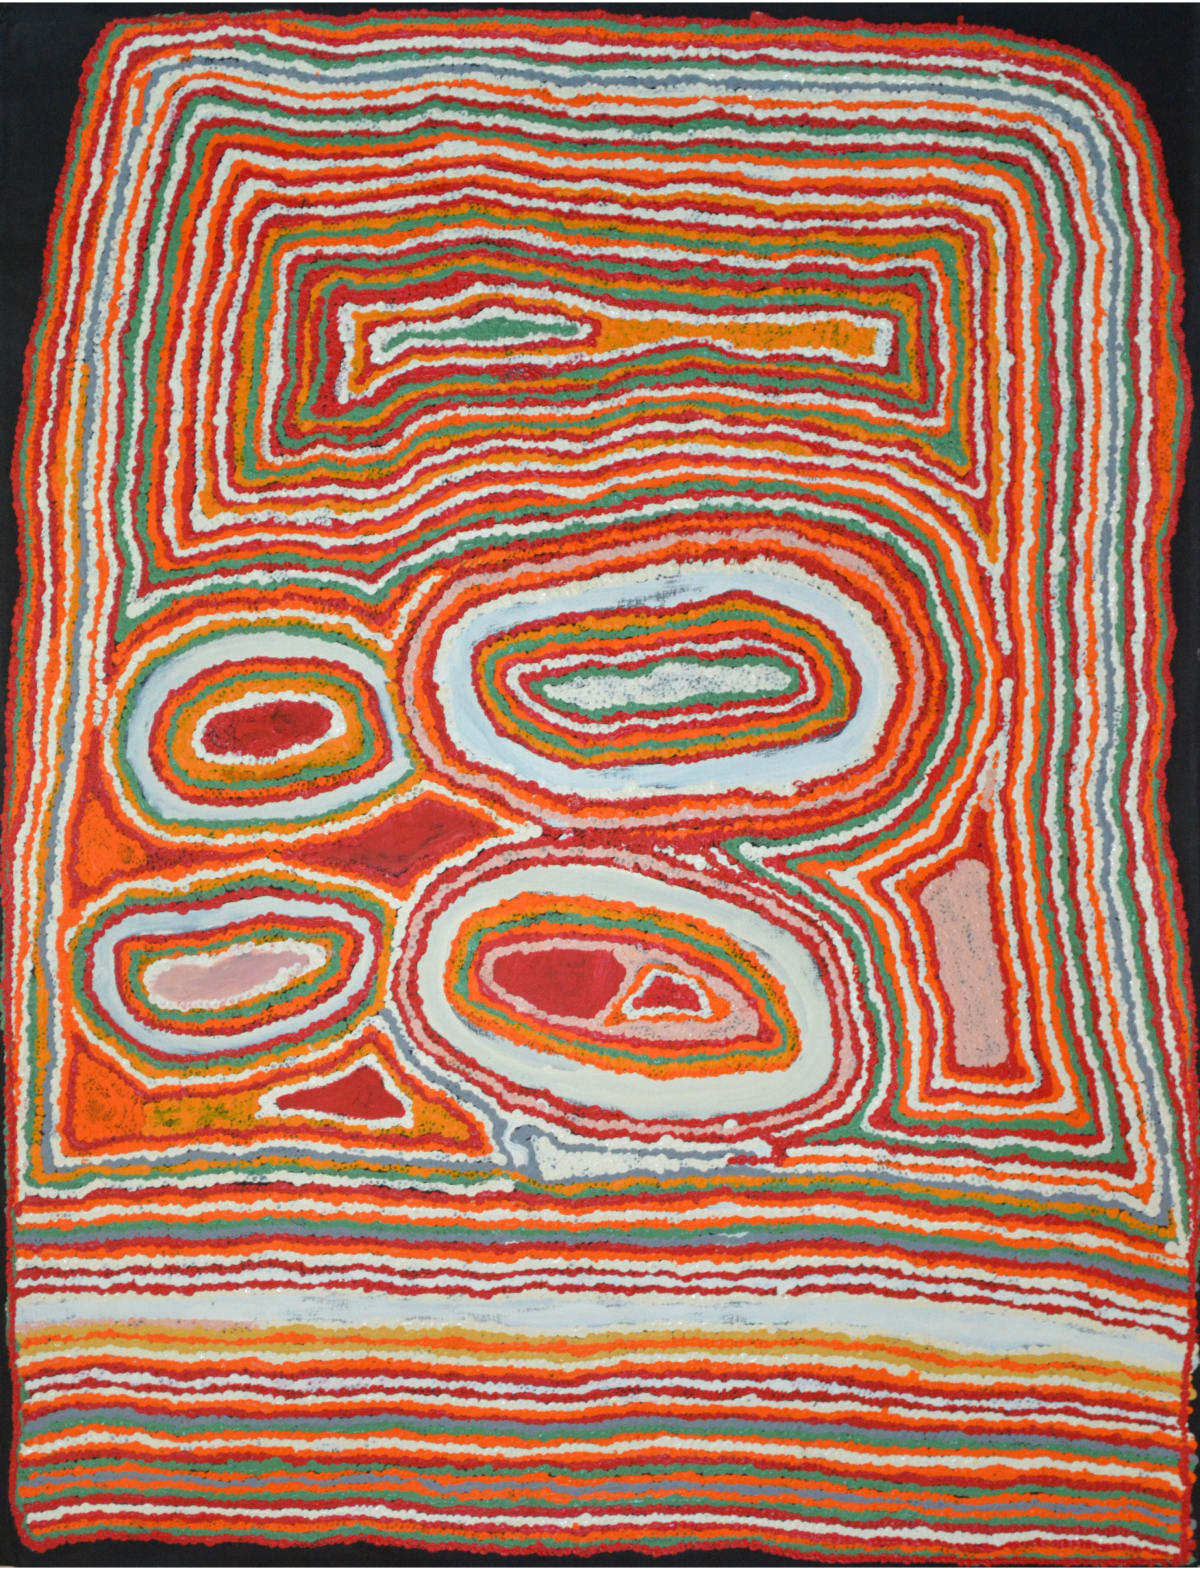 Jimmy Donegan Pukara acrylic on linen 122 x 91 cm